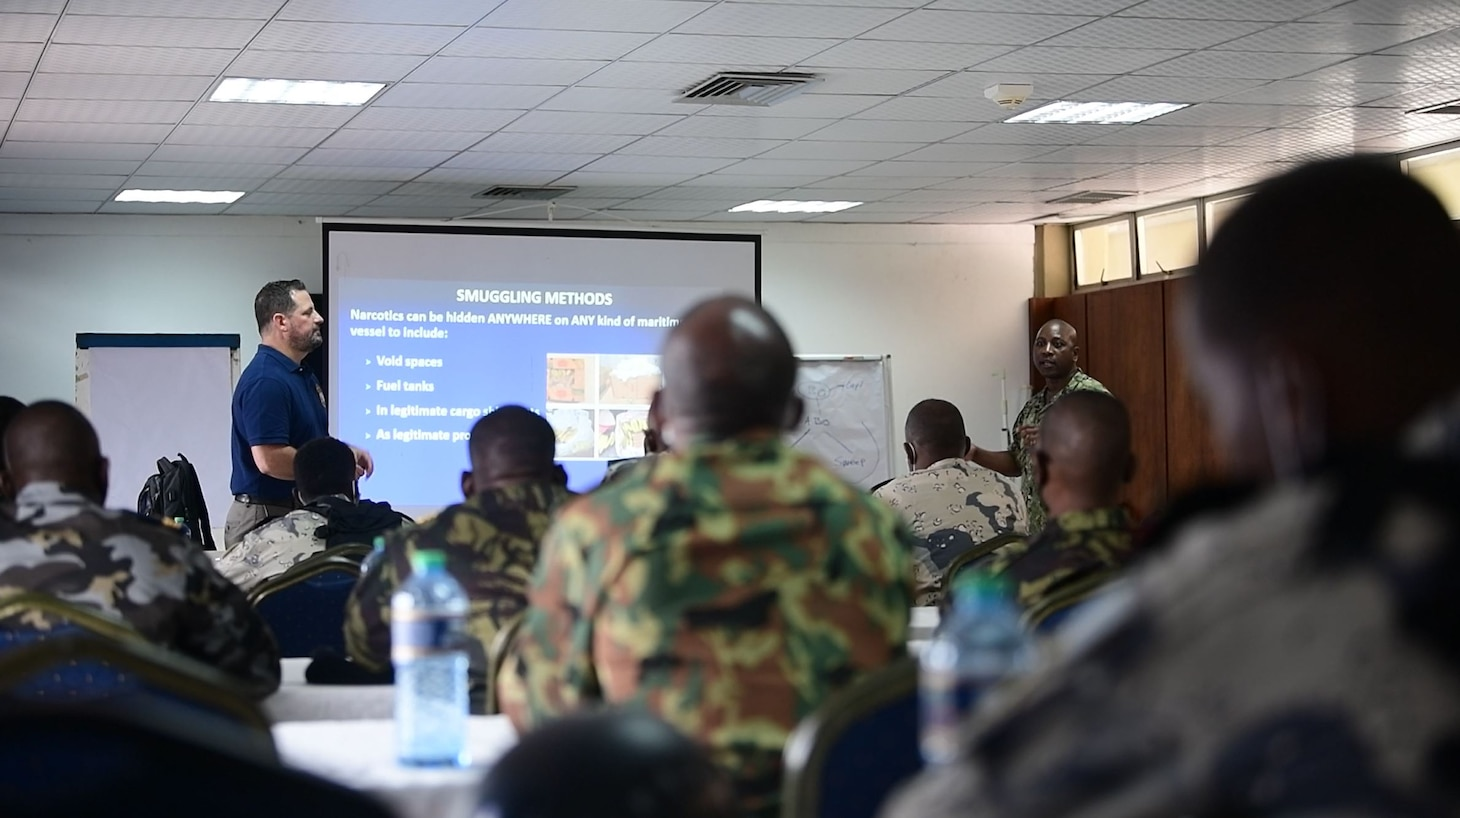 (Aug. 2, 2021) Hospital Corpsman 1st Class Marcelin Aggossou, right, translates during a training evolution as part of Cutlass Express 2021 in East Africa, Aug. 2, 2021. Cutlass Express is designed to improve regional cooperation, maritime domain awareness and information sharing practices to increase capabilities between the U.S., East African and Western Indian Ocean nations to counter illicit maritime activity.